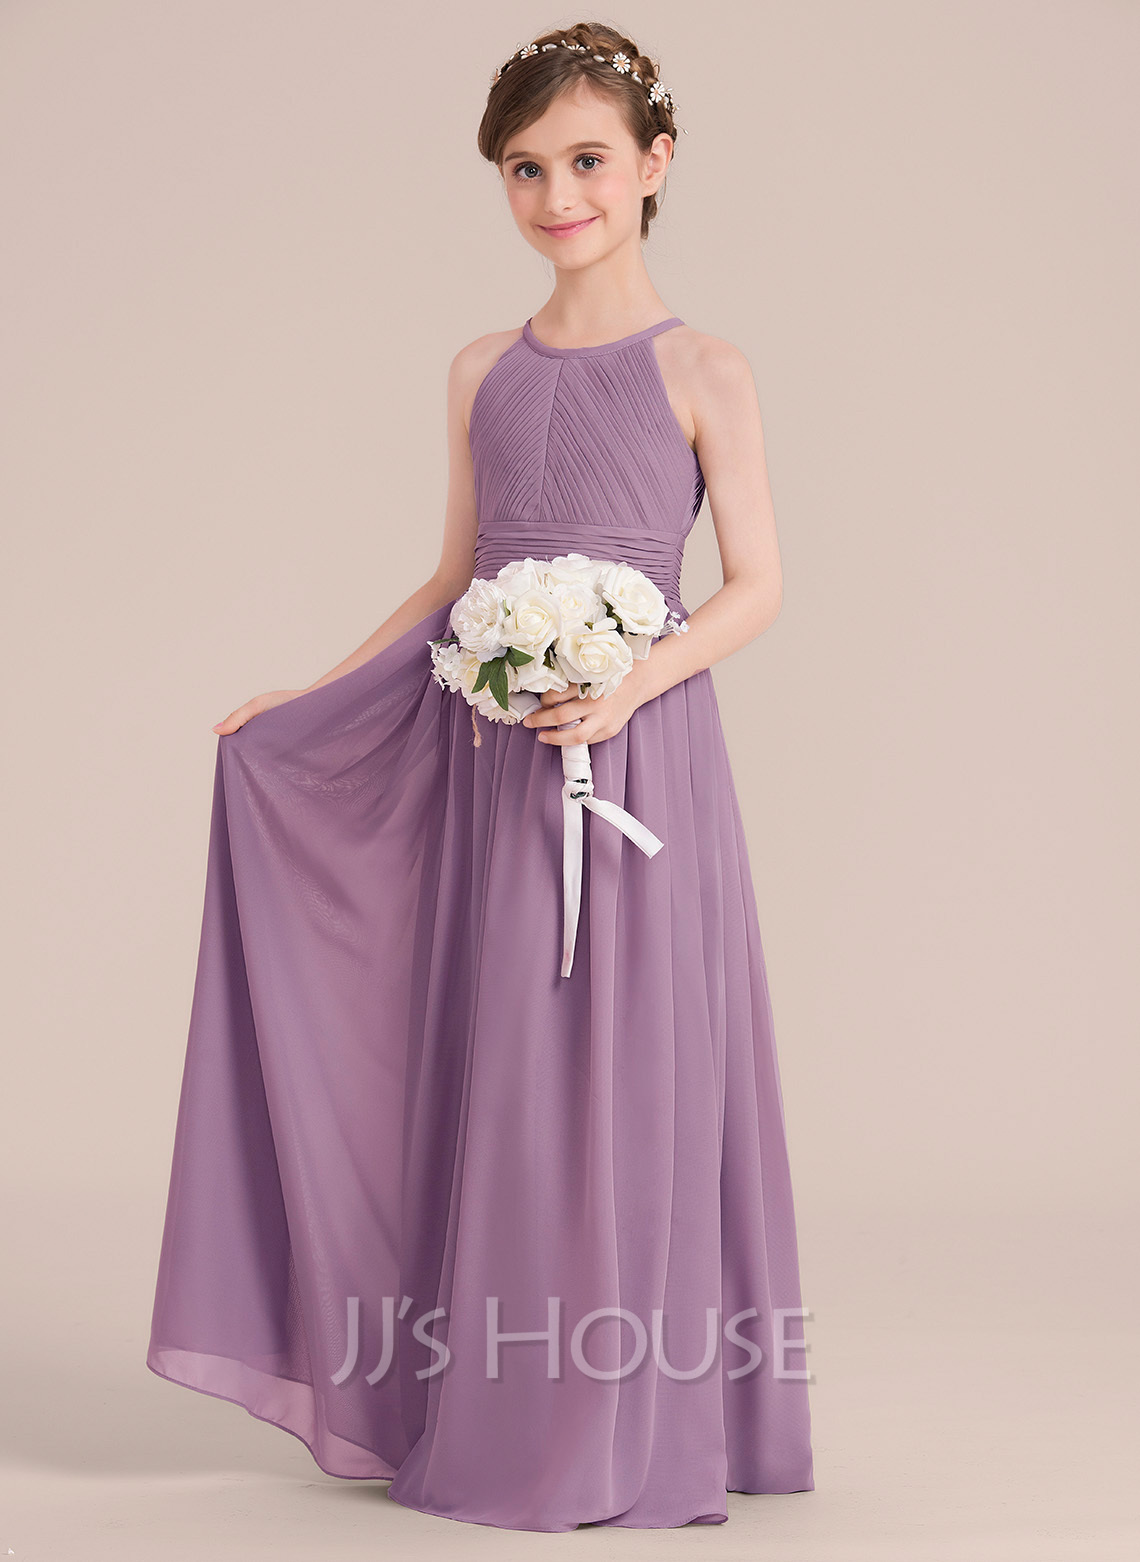 ce658264c83 A-Line Princess Scoop Neck Floor-Length Chiffon Junior Bridesmaid Dress  With Ruffle. Loading zoom